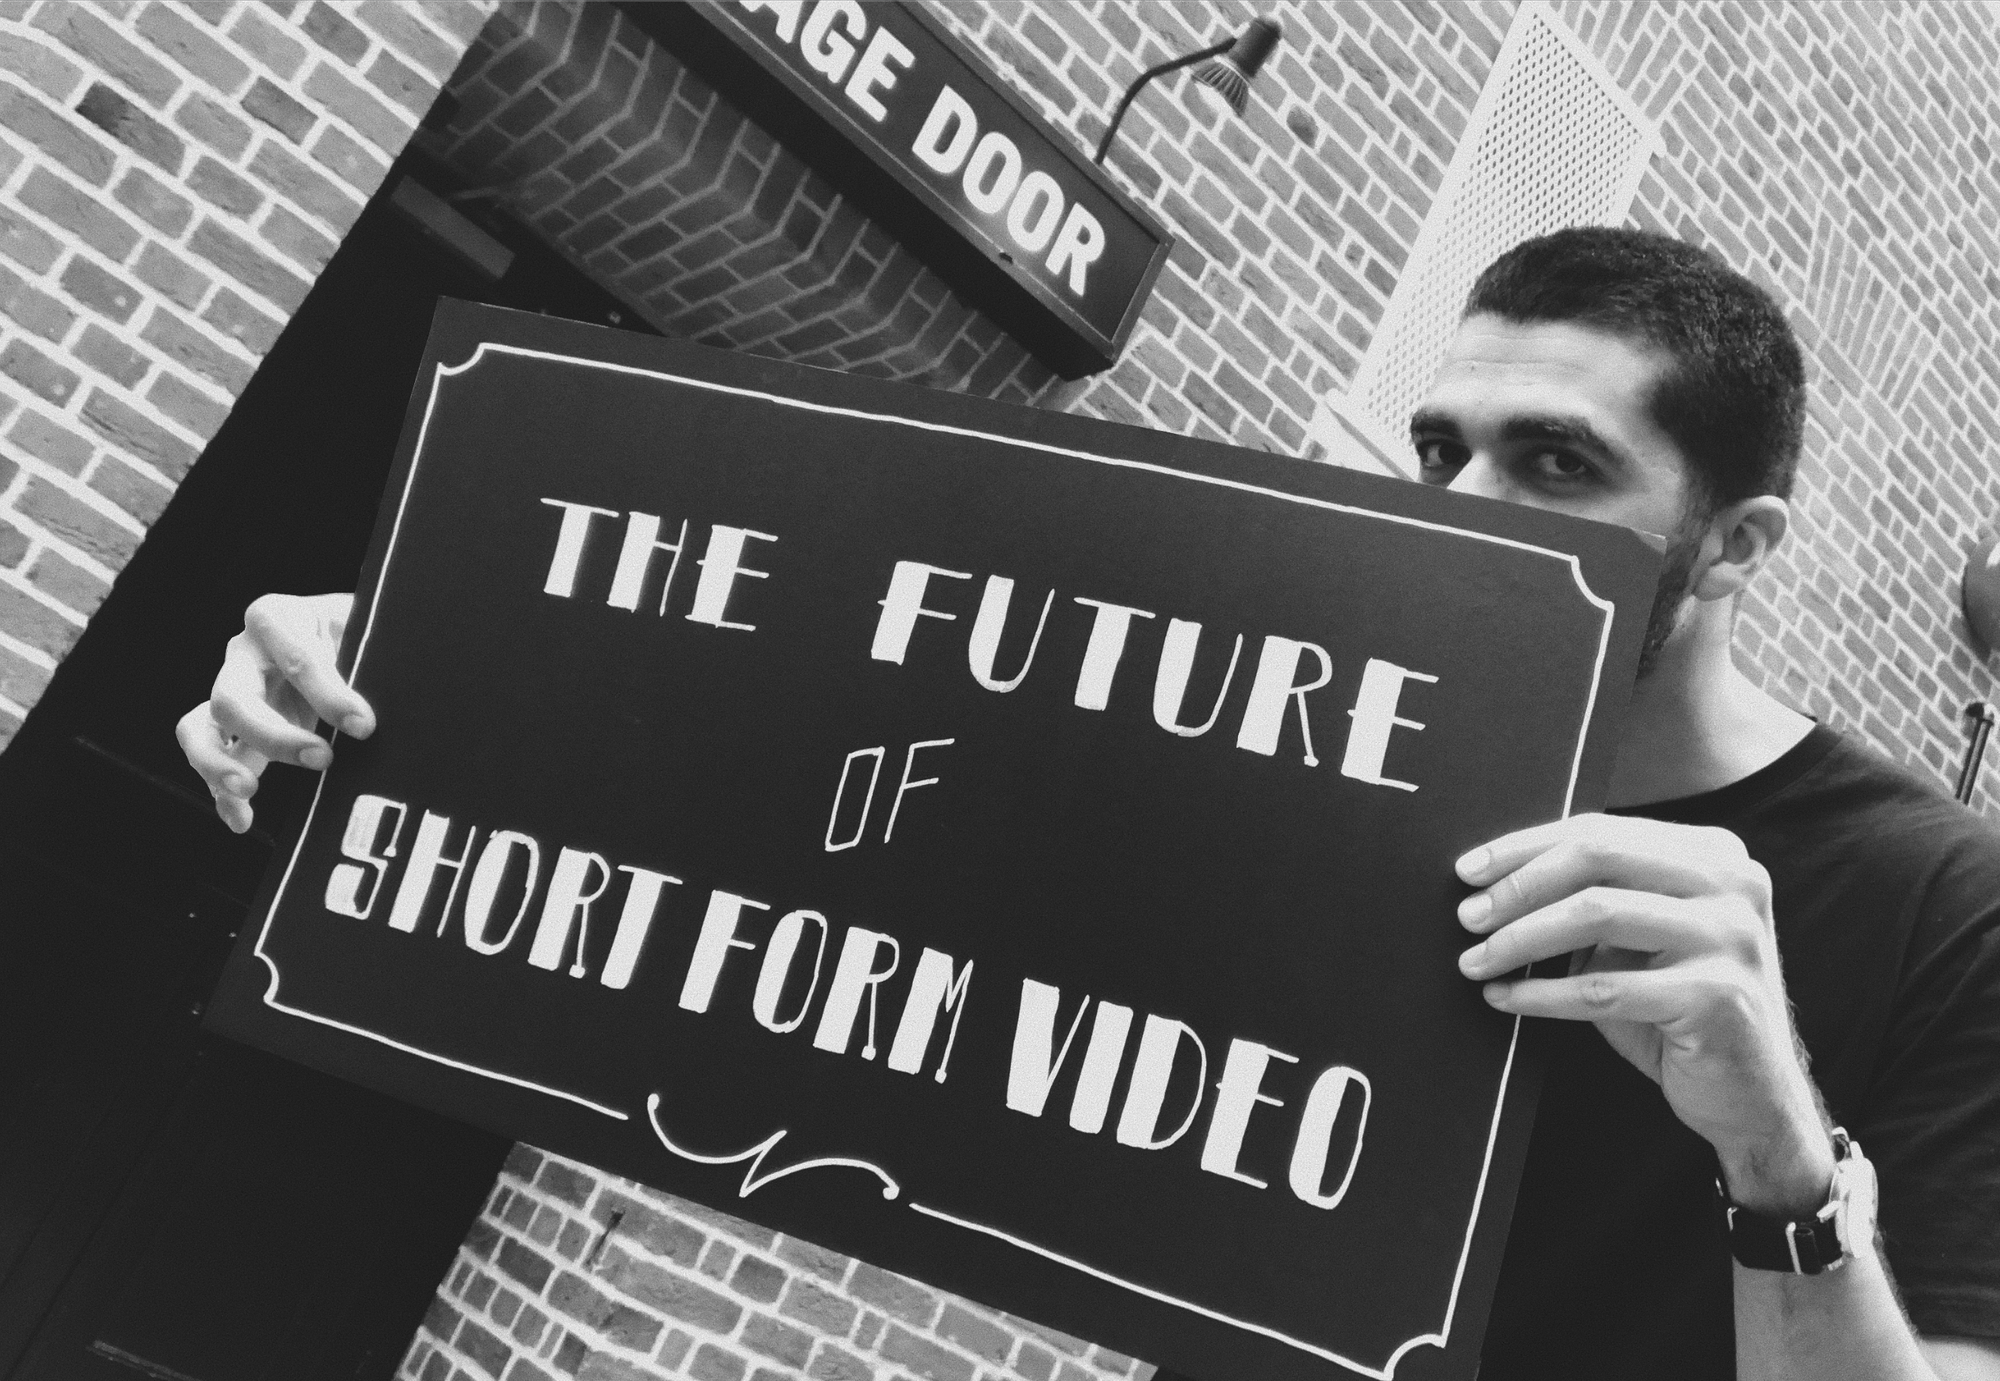 The future of short-form video is...